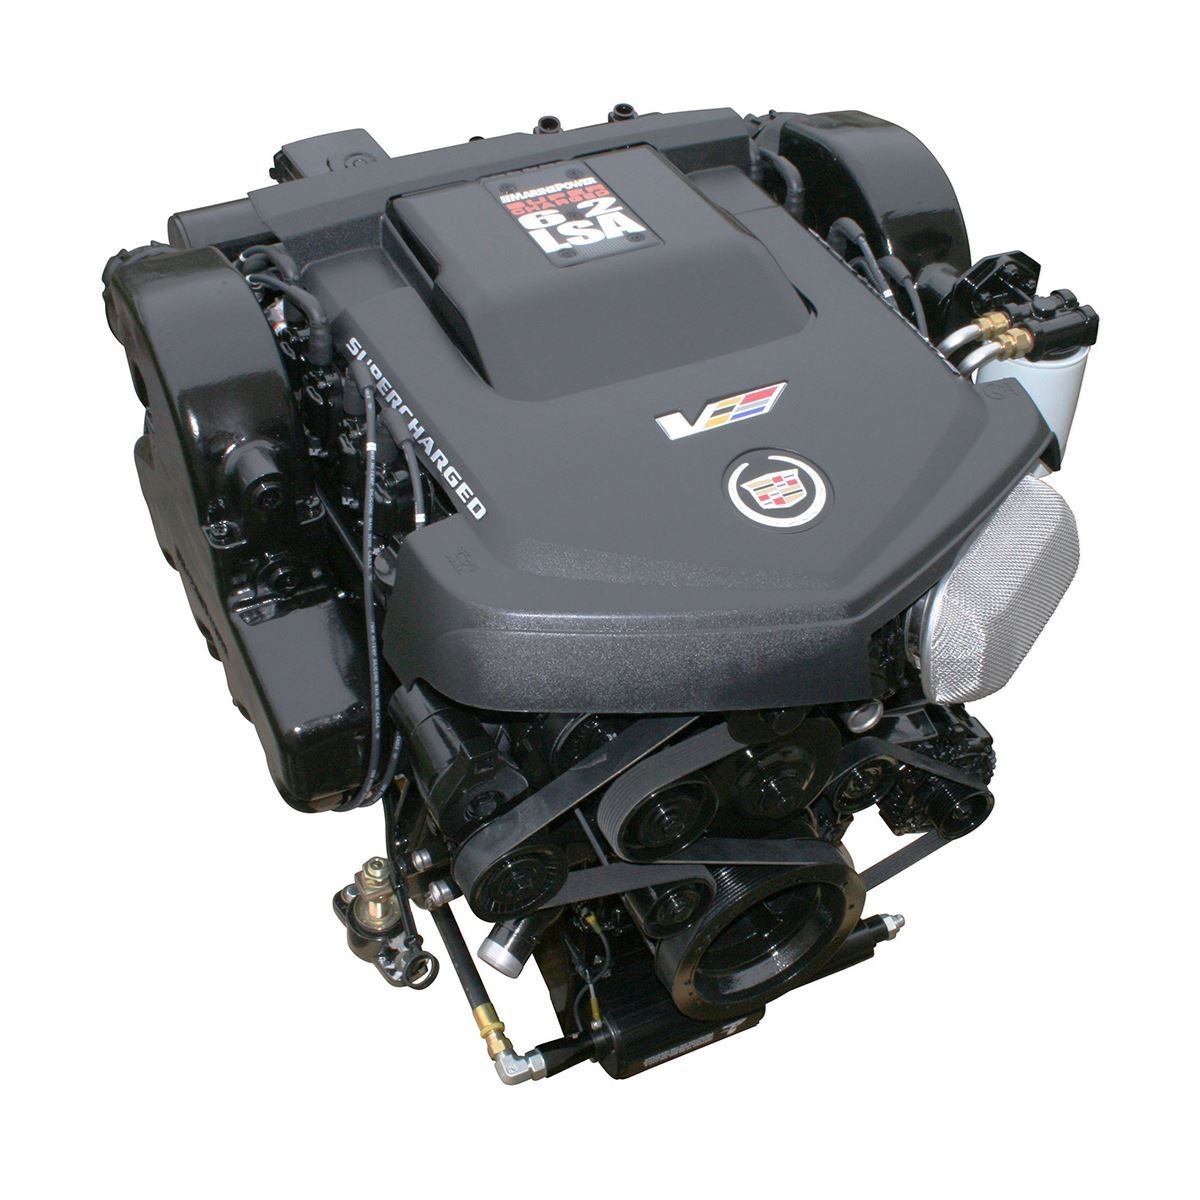 New 6.2L Supercharged JetPac Engine